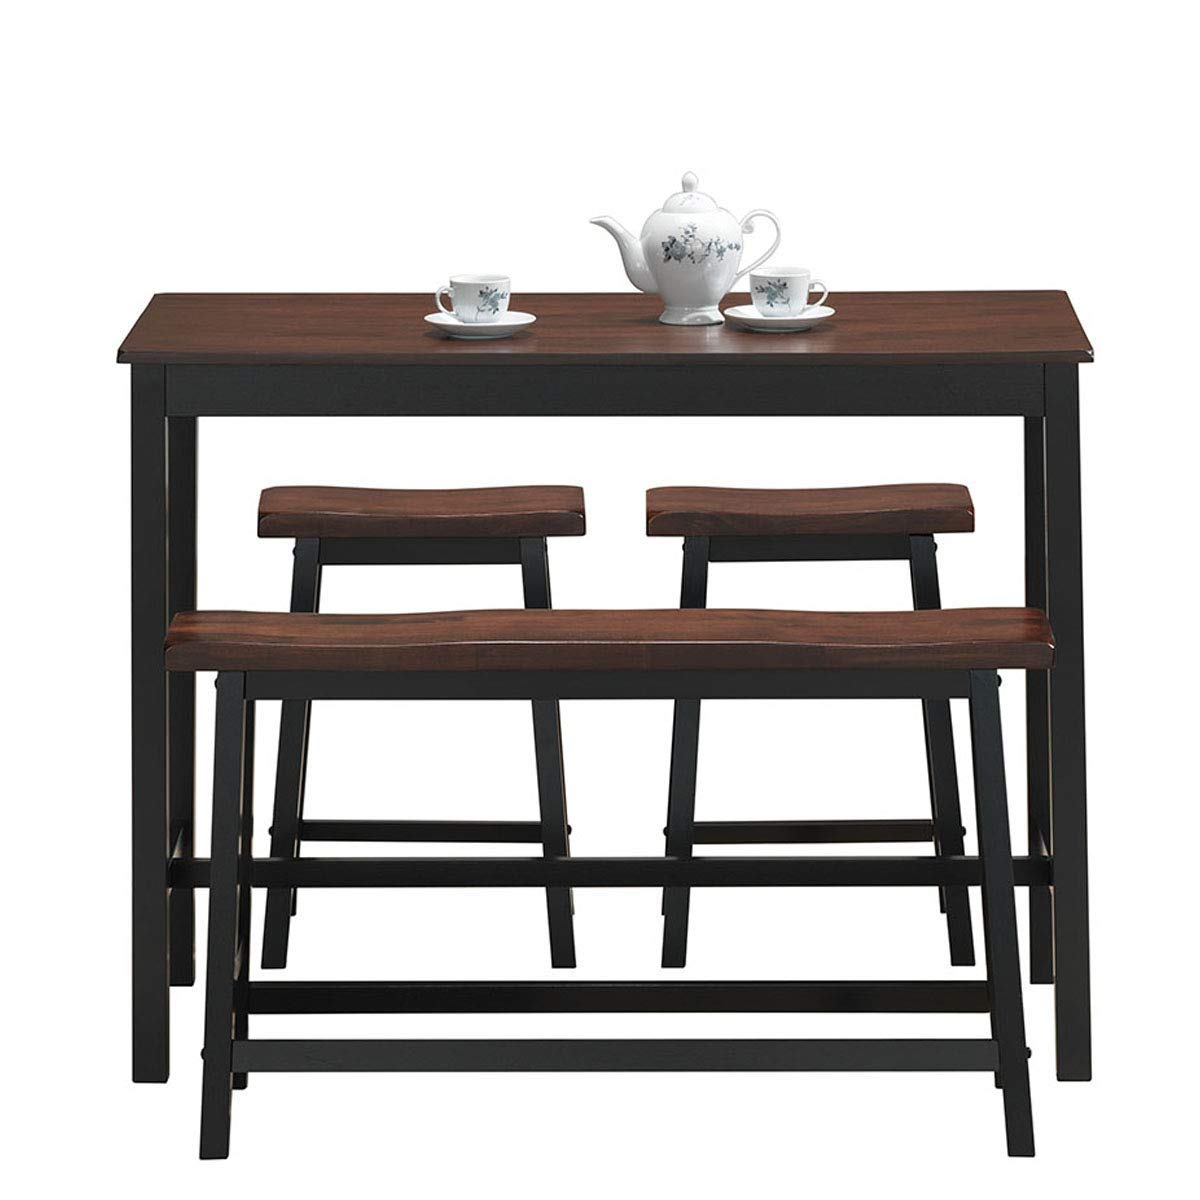 COSTWAY 4-Piece Solid Wood Dining Table Set, Counter Height Dining Furniture with One Bench and Two Saddle Stools, Industrial Style with Foot Pads, Ideal for Home, Kitchen, Living Room (Black & Brown) by COSTWAY